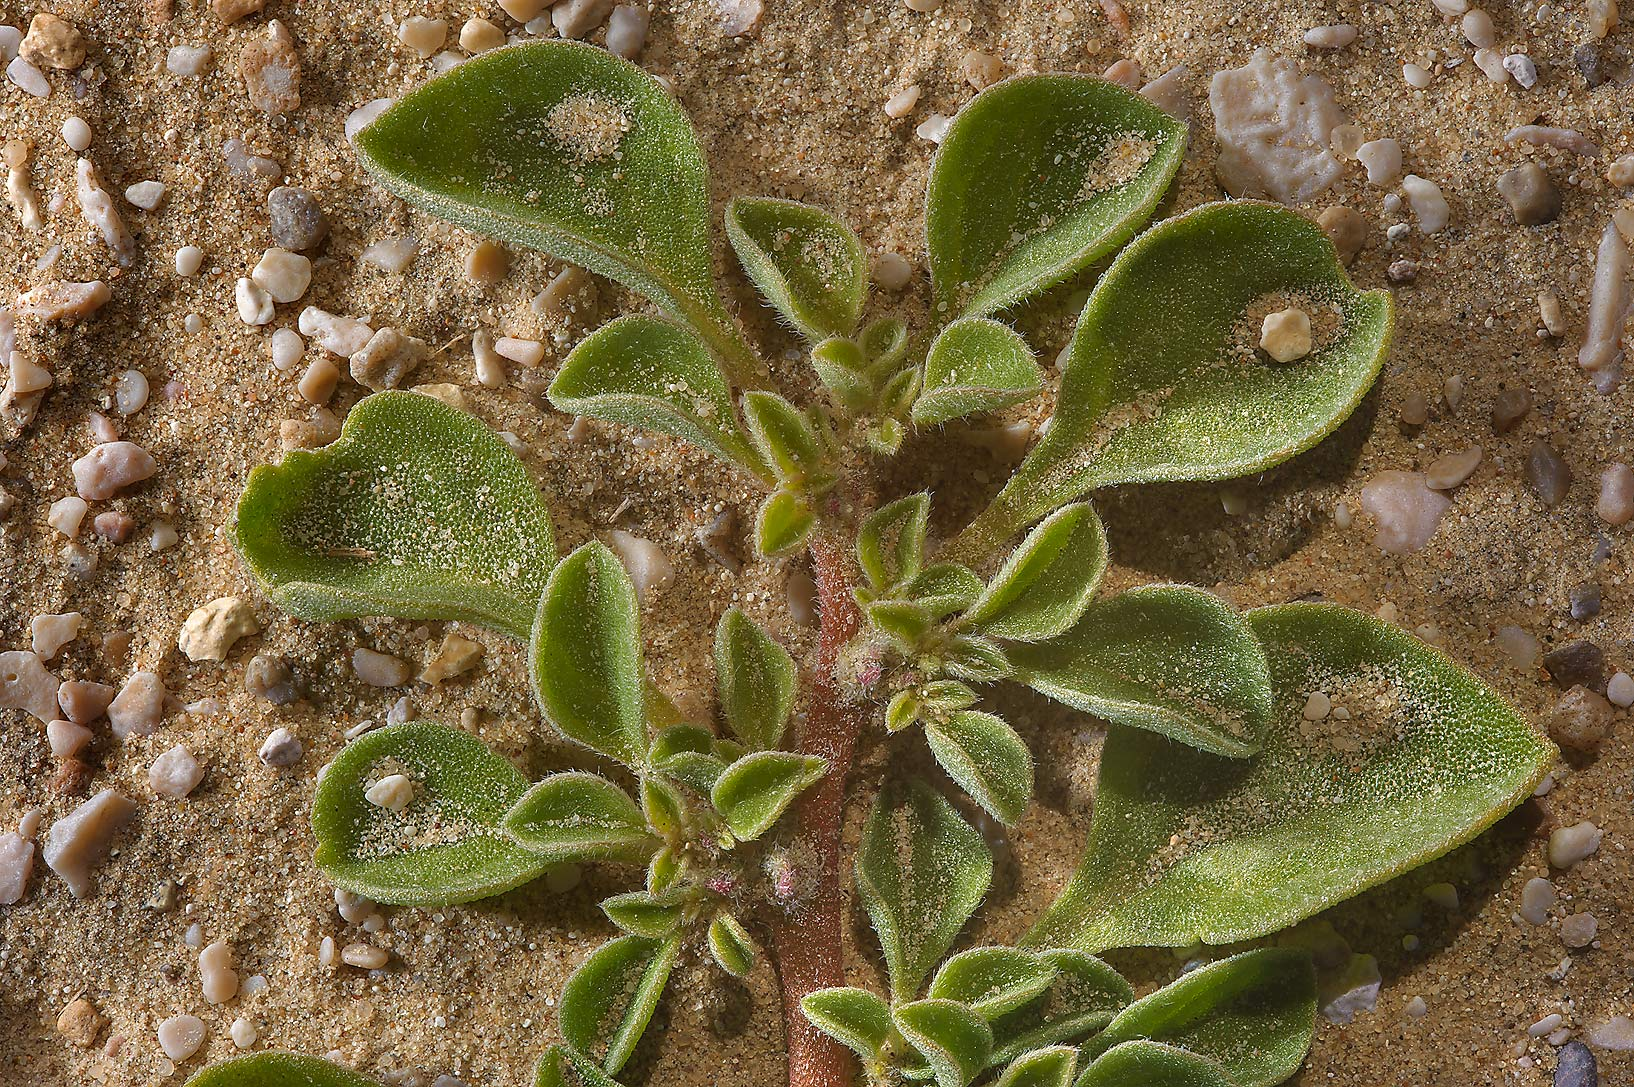 Seedling of a desert plant Aizoon canariense near...to Sawda Natheel in southern Qatar